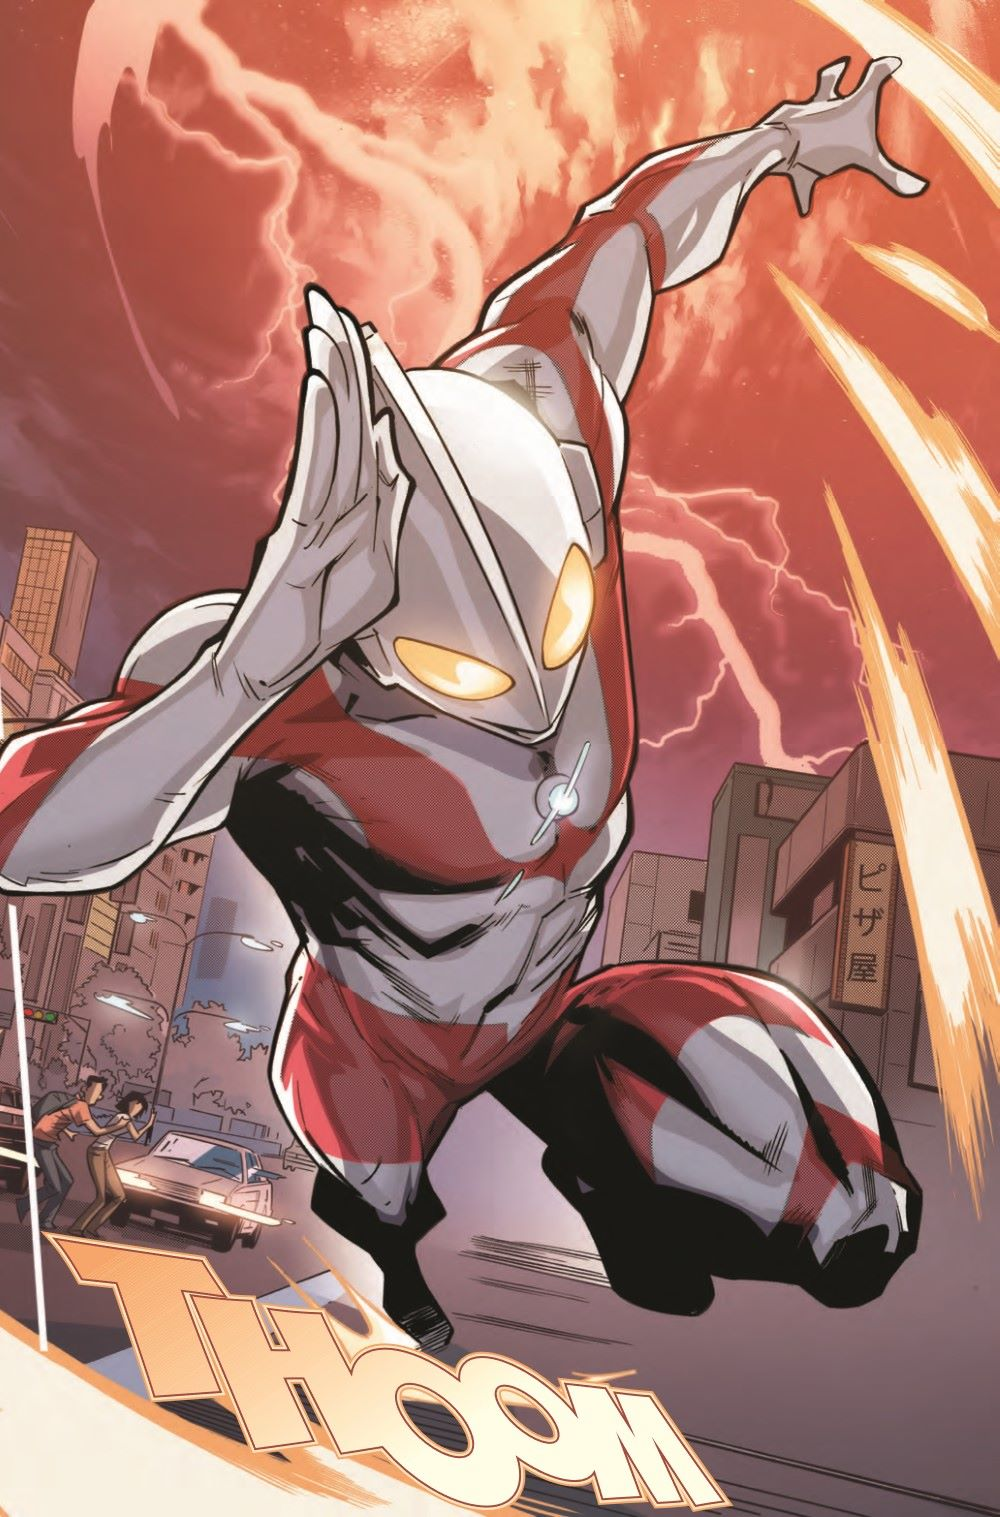 ULTRAMANRISE2020005_Preview-5 ComicList Previews: RISE OF ULTRAMAN #5 (OF 5)